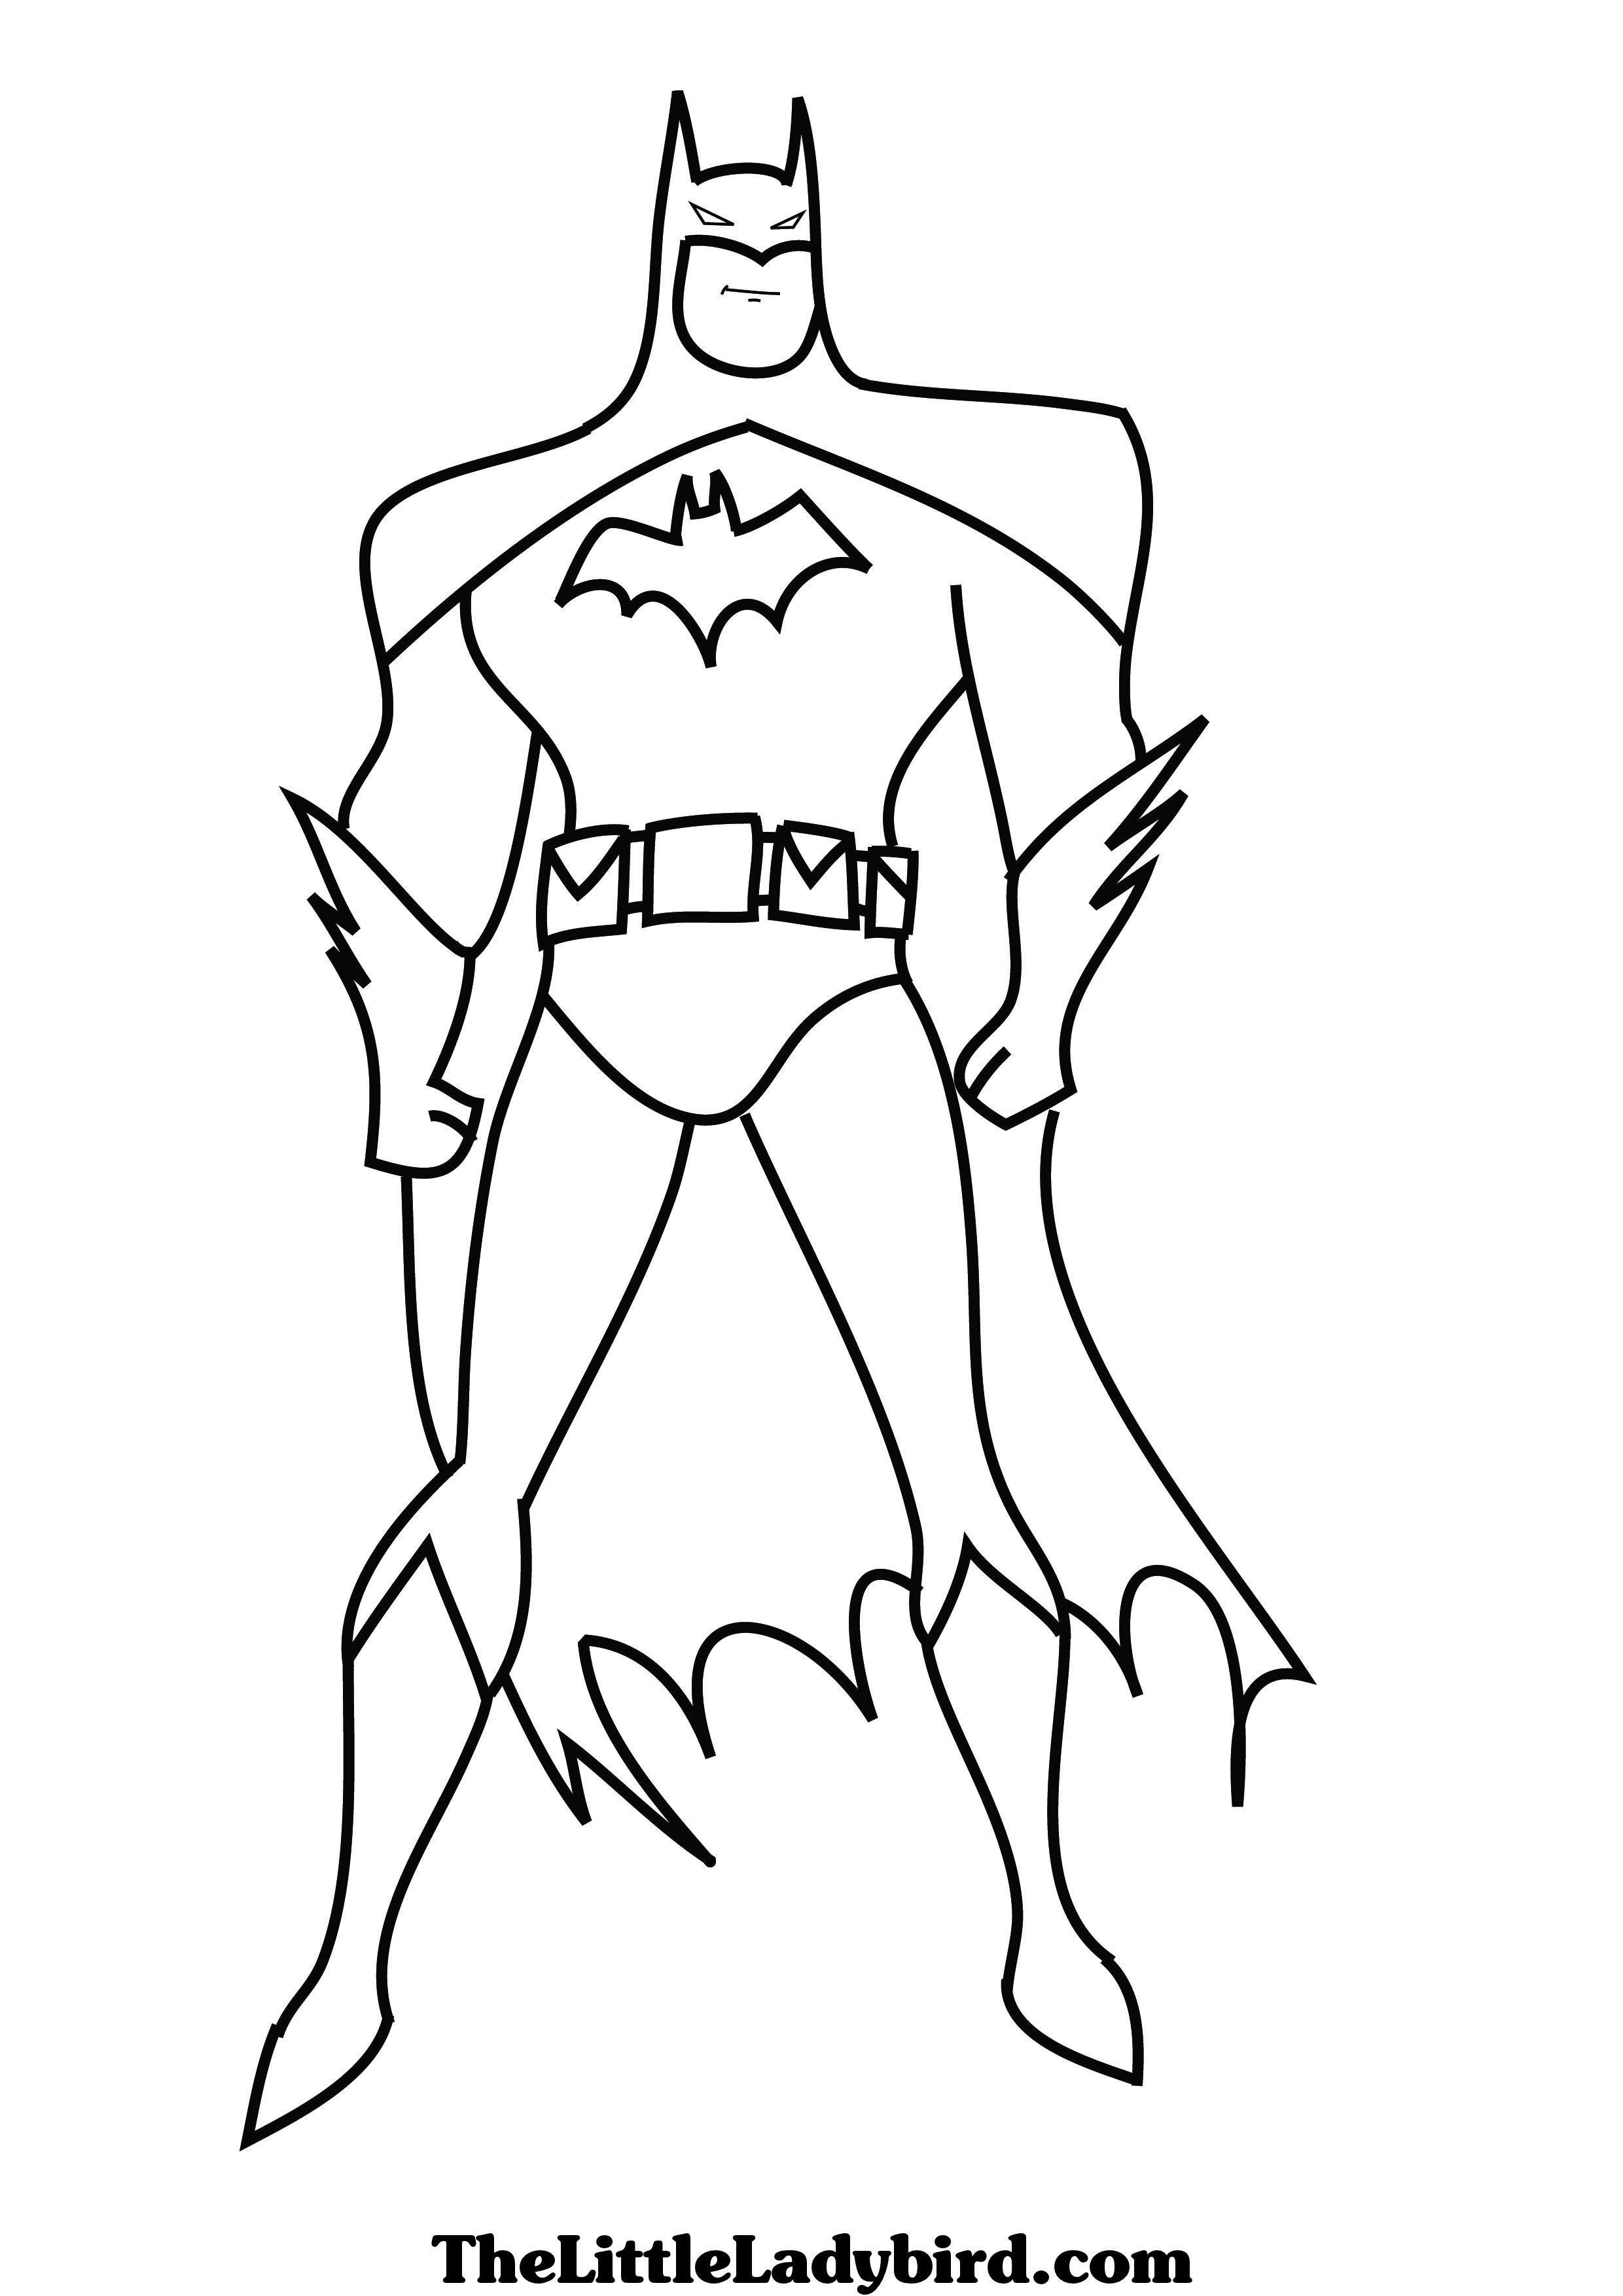 Justice League Coloring Pages Luxury Coloring Pages Batman Colouring Sheet 71 Printable Ent Superhero Coloring Superhero Coloring Pages Superman Coloring Pages